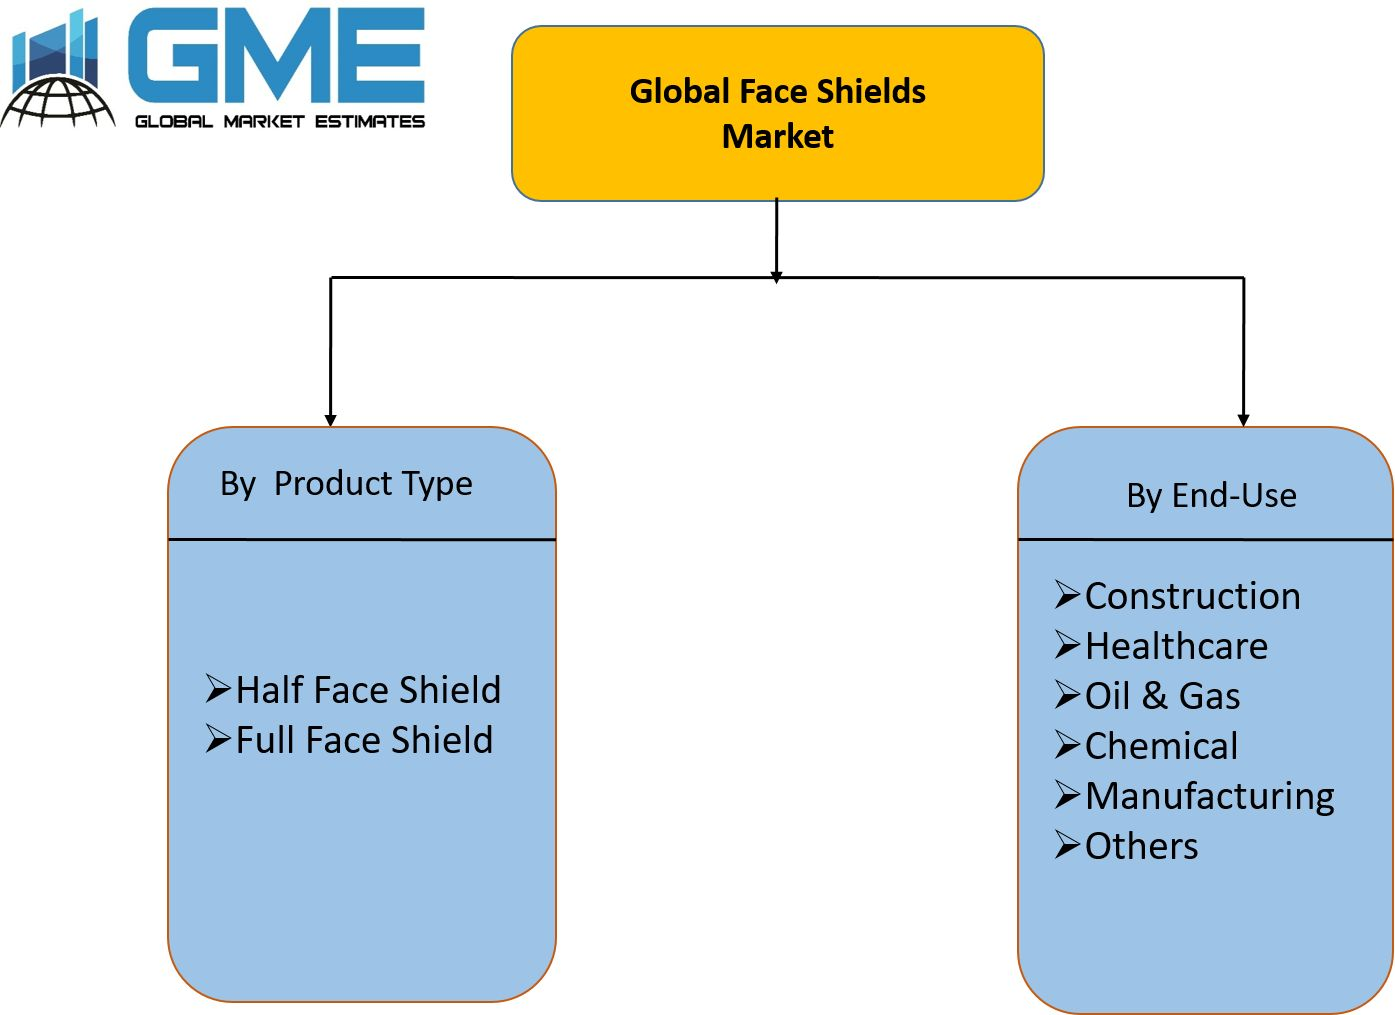 Global Face Shields Market Segmentation